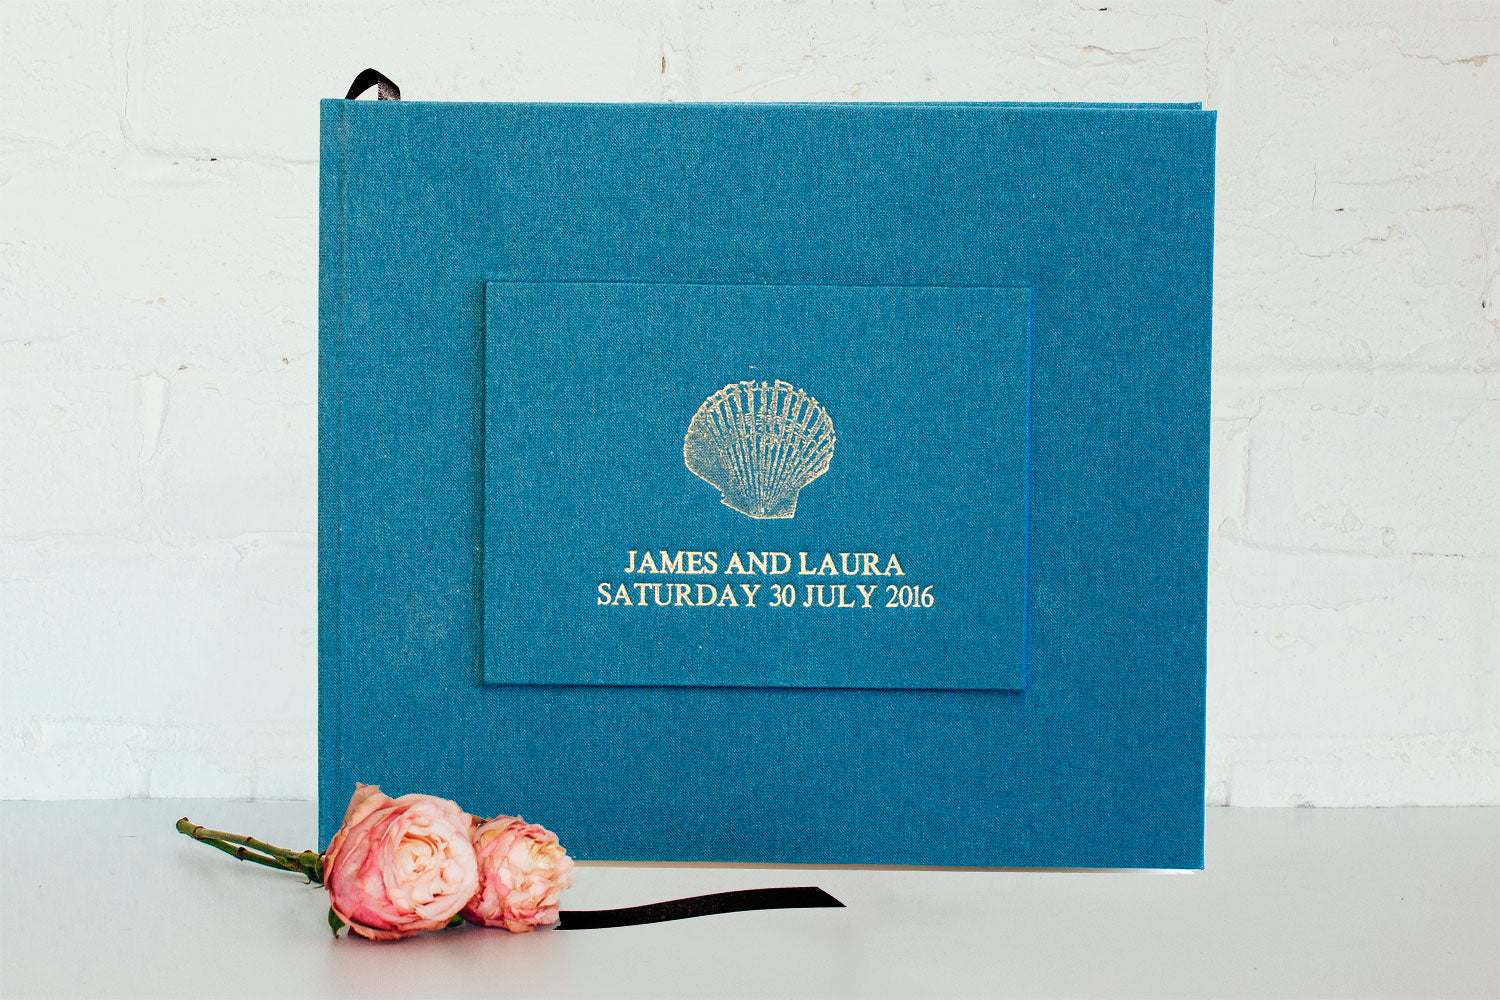 personalised wedding guest book from Bookshell bindery, hand bound in blue book cloth with gold foil embossing, shell cover picture